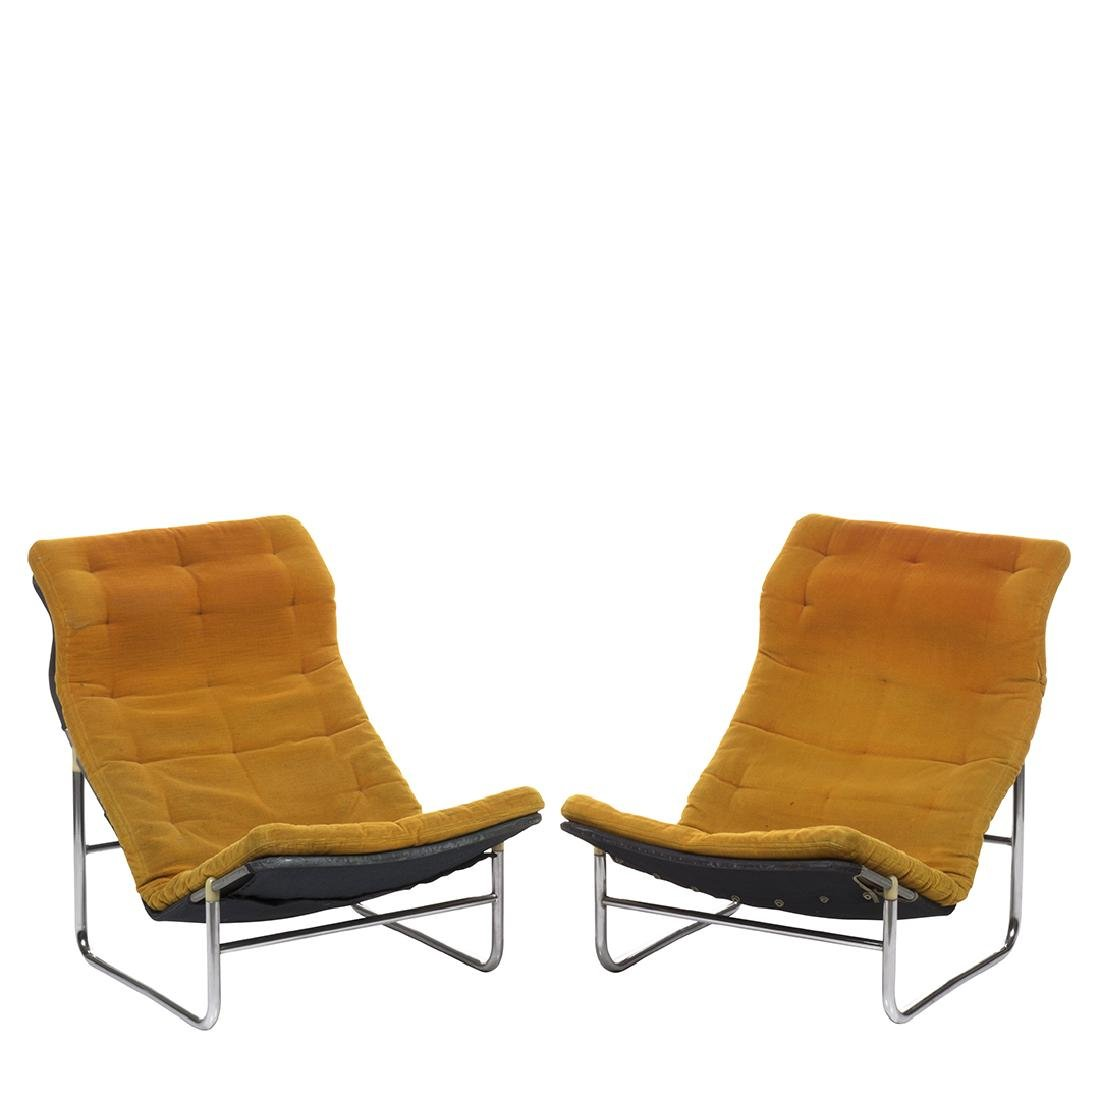 Bruno Mathsson Lounge Chairs (2)